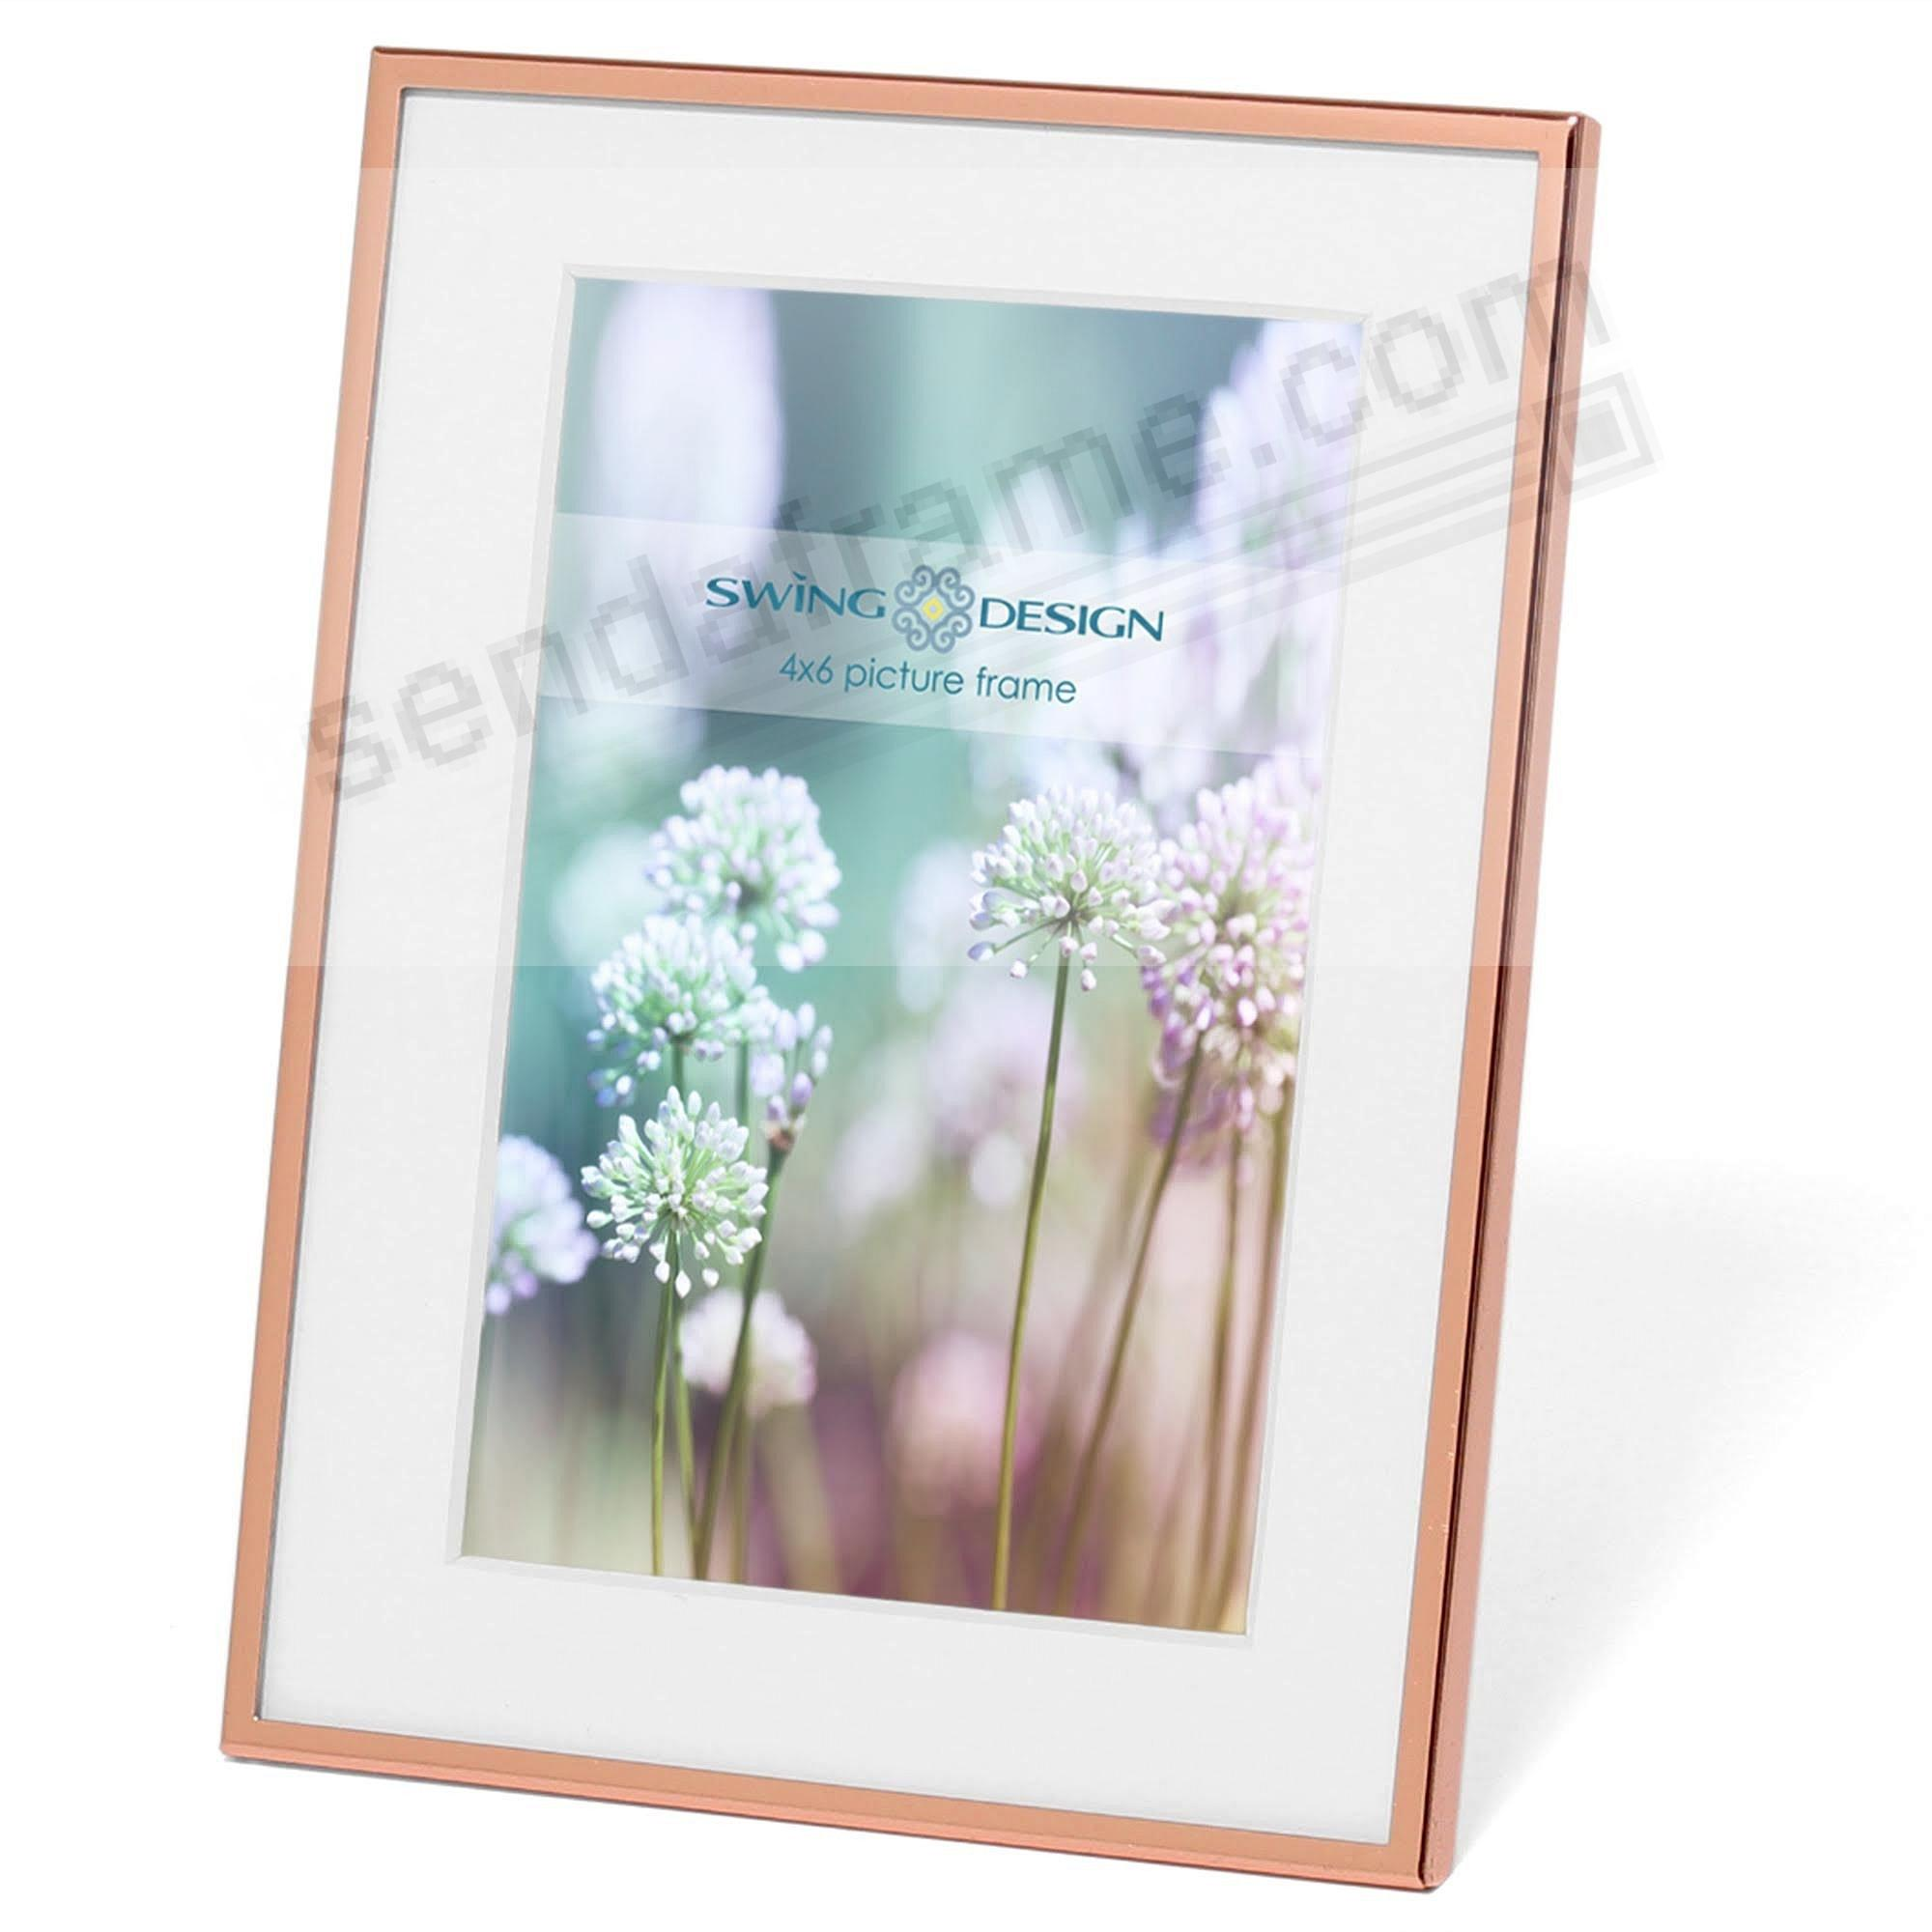 The original essex rose gold 4x6 frame by swing design picture the original essex rose gold 4x6 frame by swing design jeuxipadfo Gallery